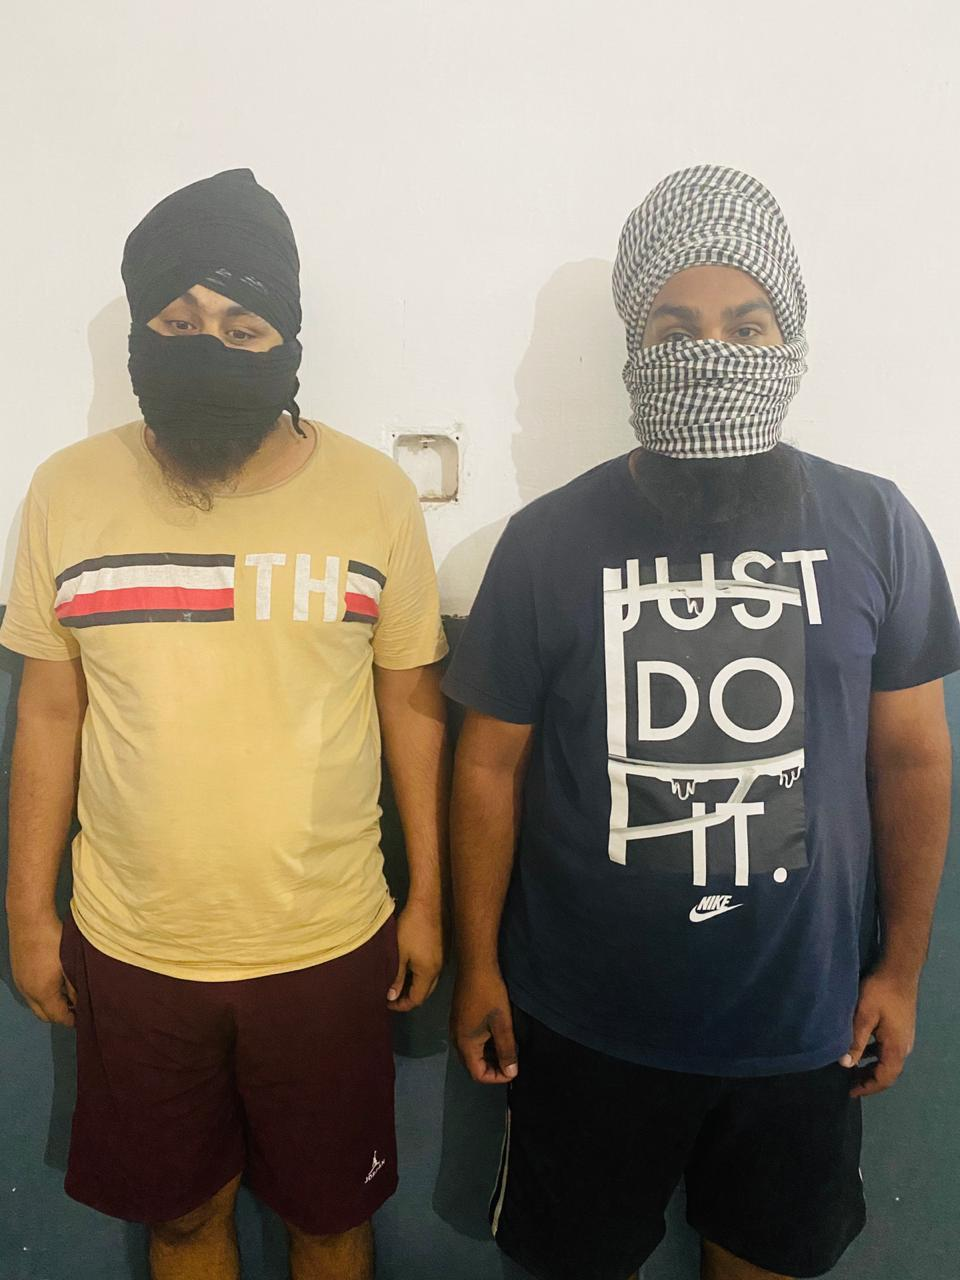 PUNJAB POLICE ARRESTS TWO ACCOMPLICES OF INTERNATIONAL DRUG SMUGGLING RACKET BEING OPERATED BY FORMER BSF CONSTABLE